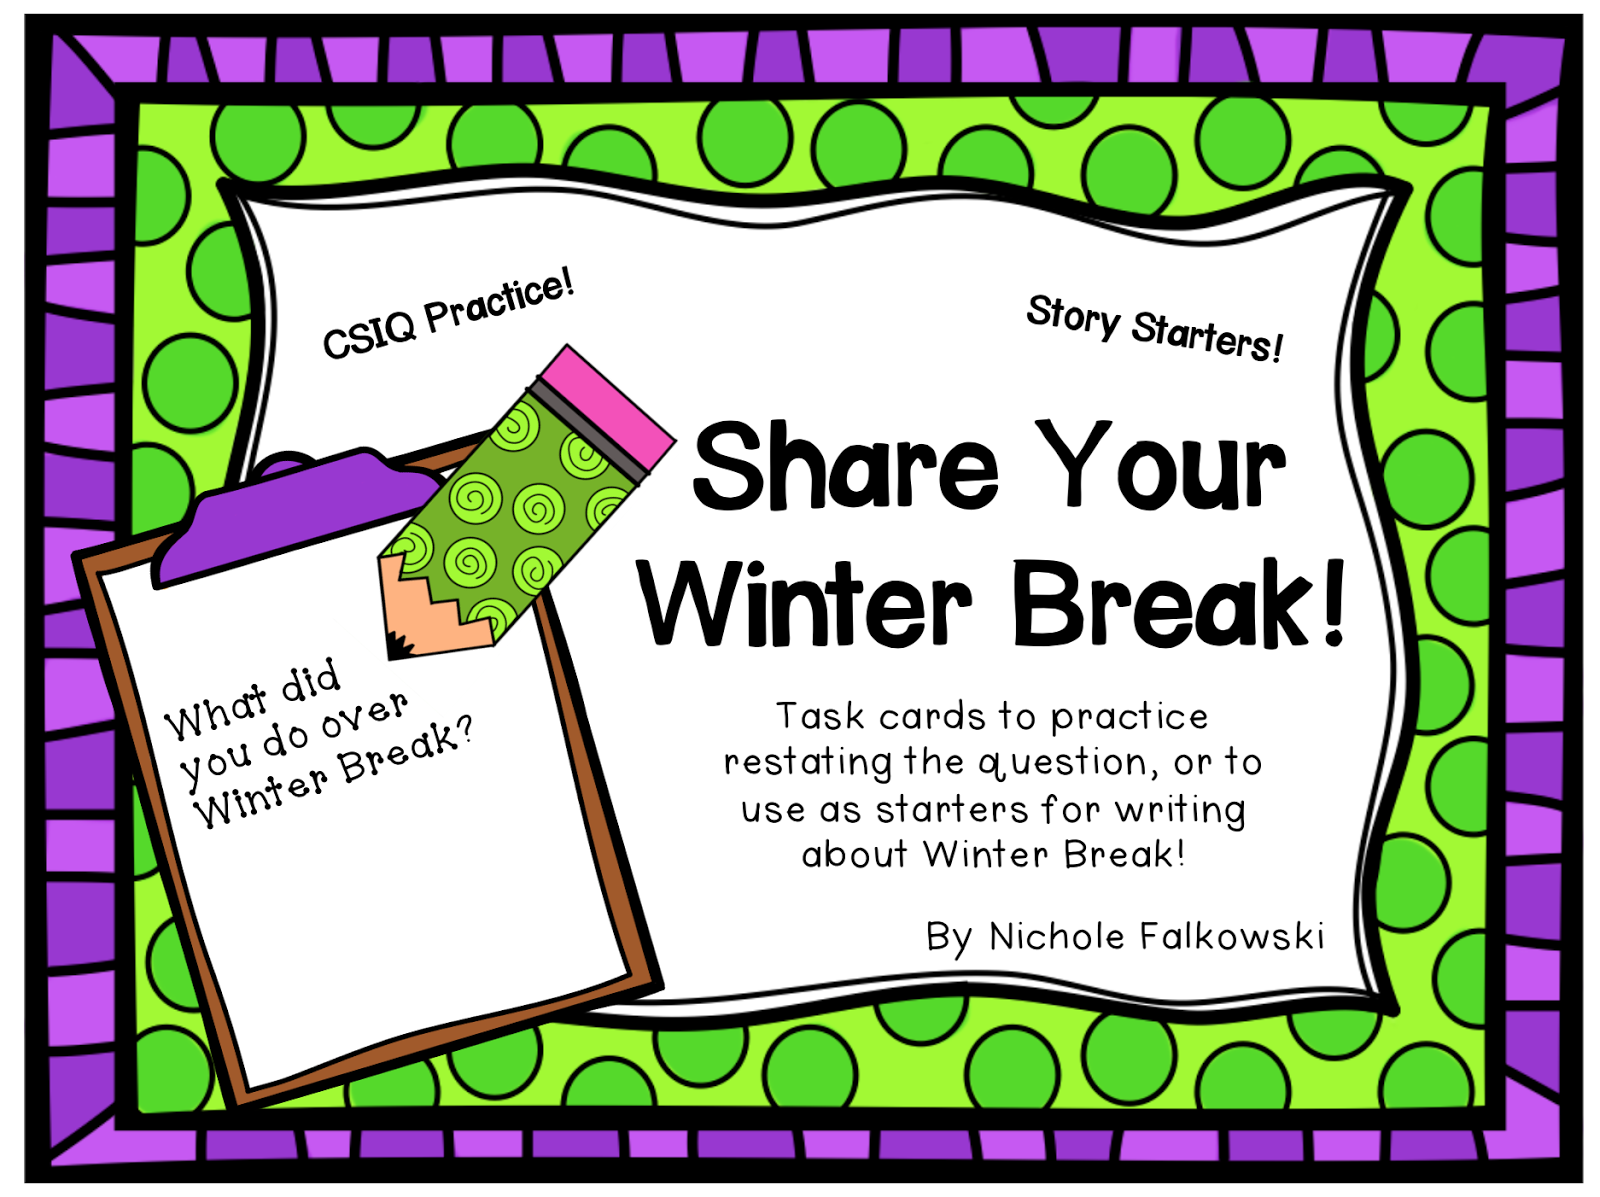 http://www.teacherspayteachers.com/Product/Winter-Break-CSIQ-FREEBIE-1016447